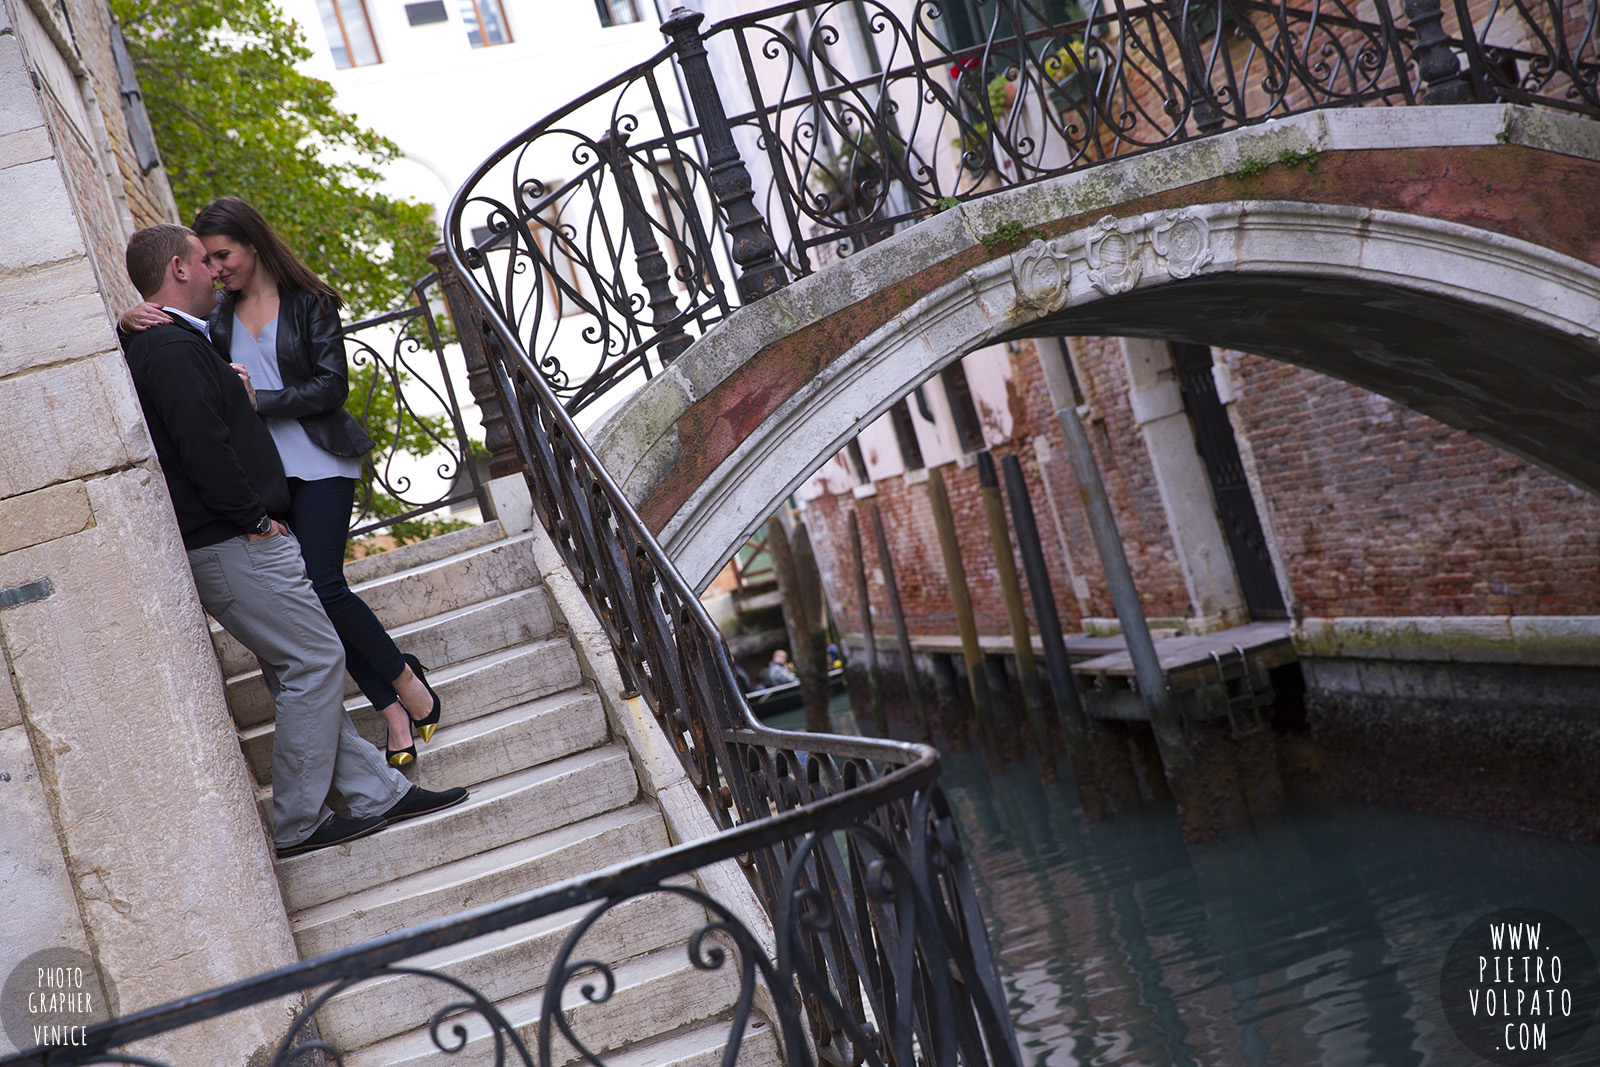 pre wedding love story photoshoot in venice italy photographer pietro volpato